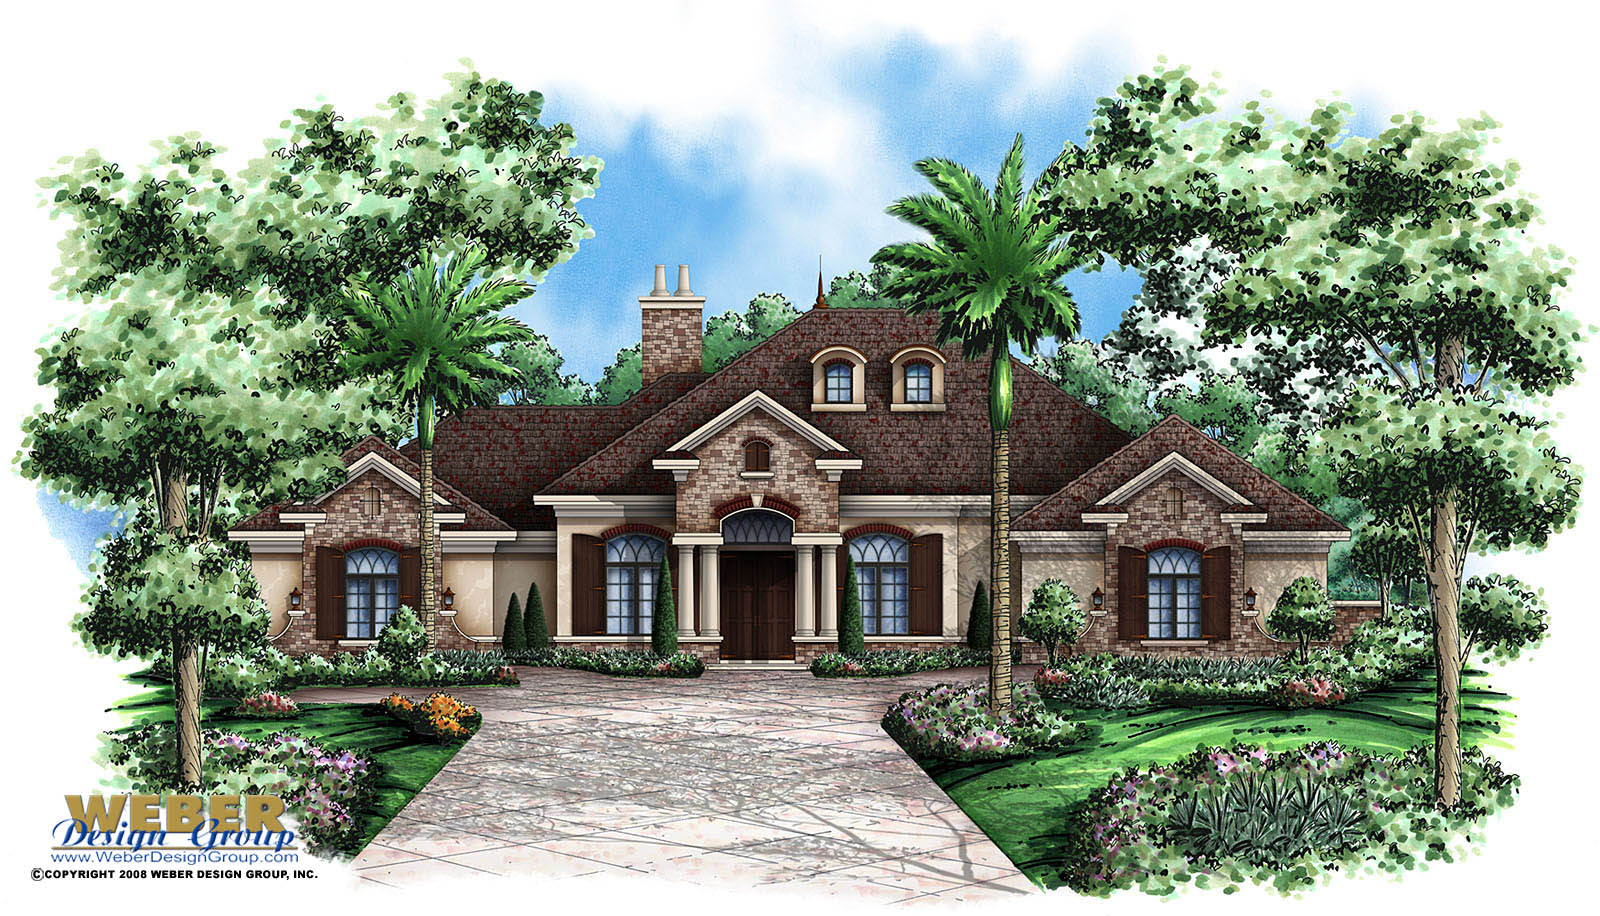 Verdelais home plan weber design group naples fl for Weber design